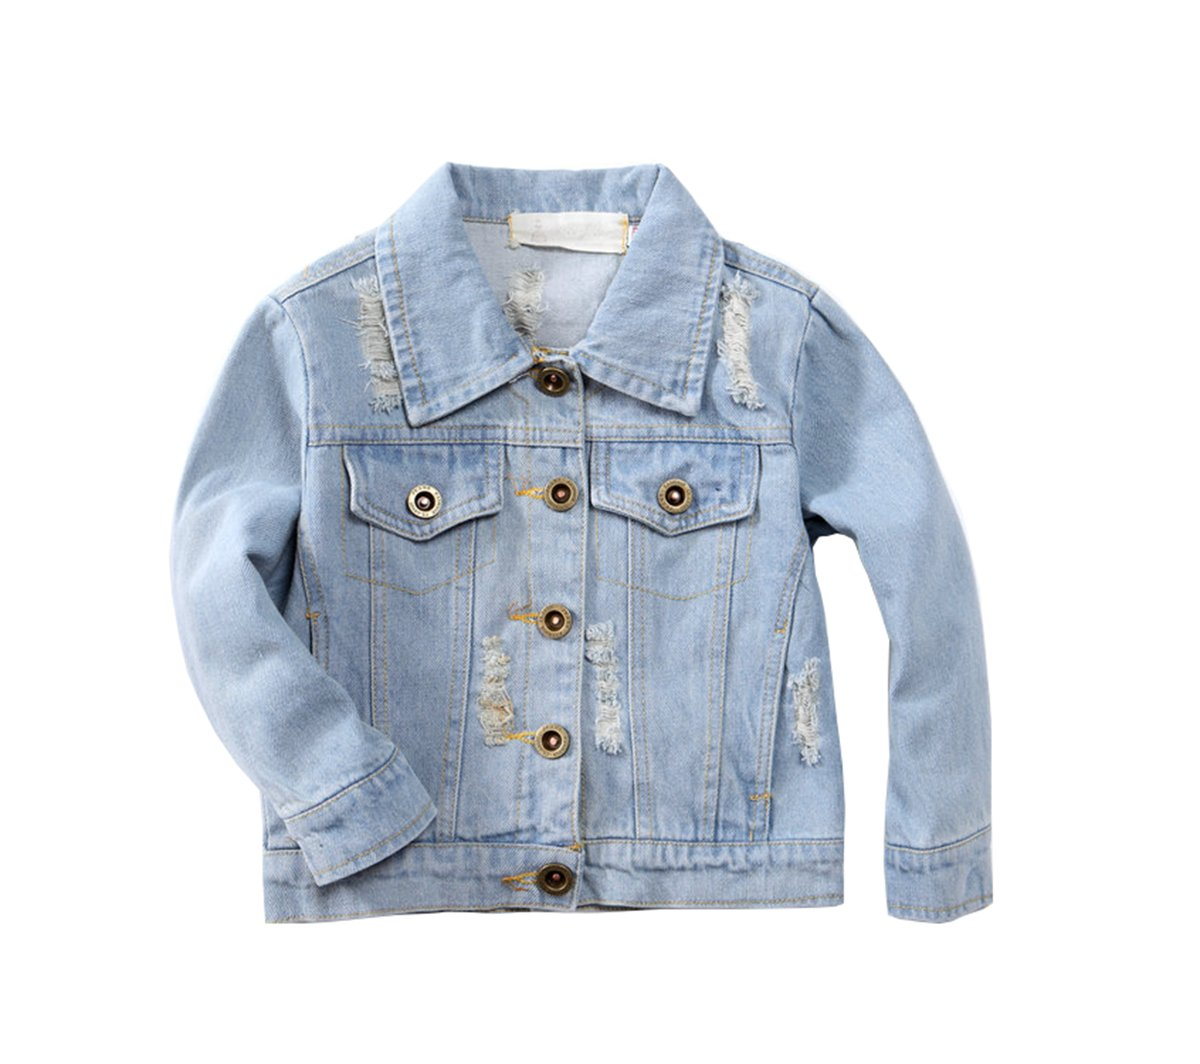 TAIYCYXGAN Girl's Denim Jacket Embroidery Flower Kids Toddler Casual Ripped Denim Coat for Girl Blue 140 by TAIYCYXGAN